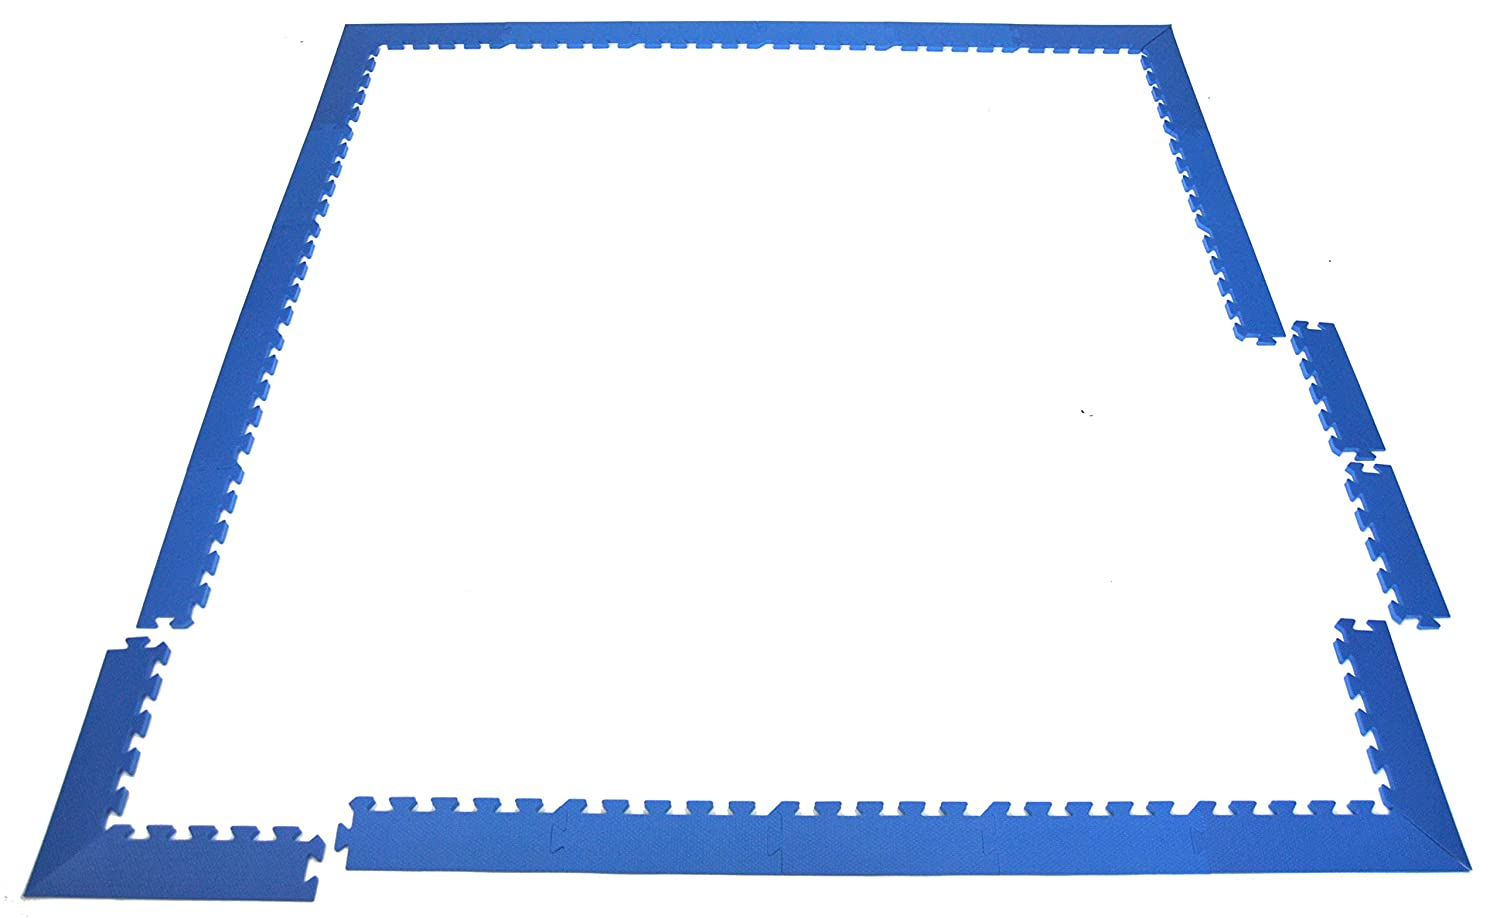 Wonder Mat Edging Package Set: 16 Sides & 4 Pairs of Corners for 6' x 6' Area (Blue) eWonderWorld CT-2627PKG